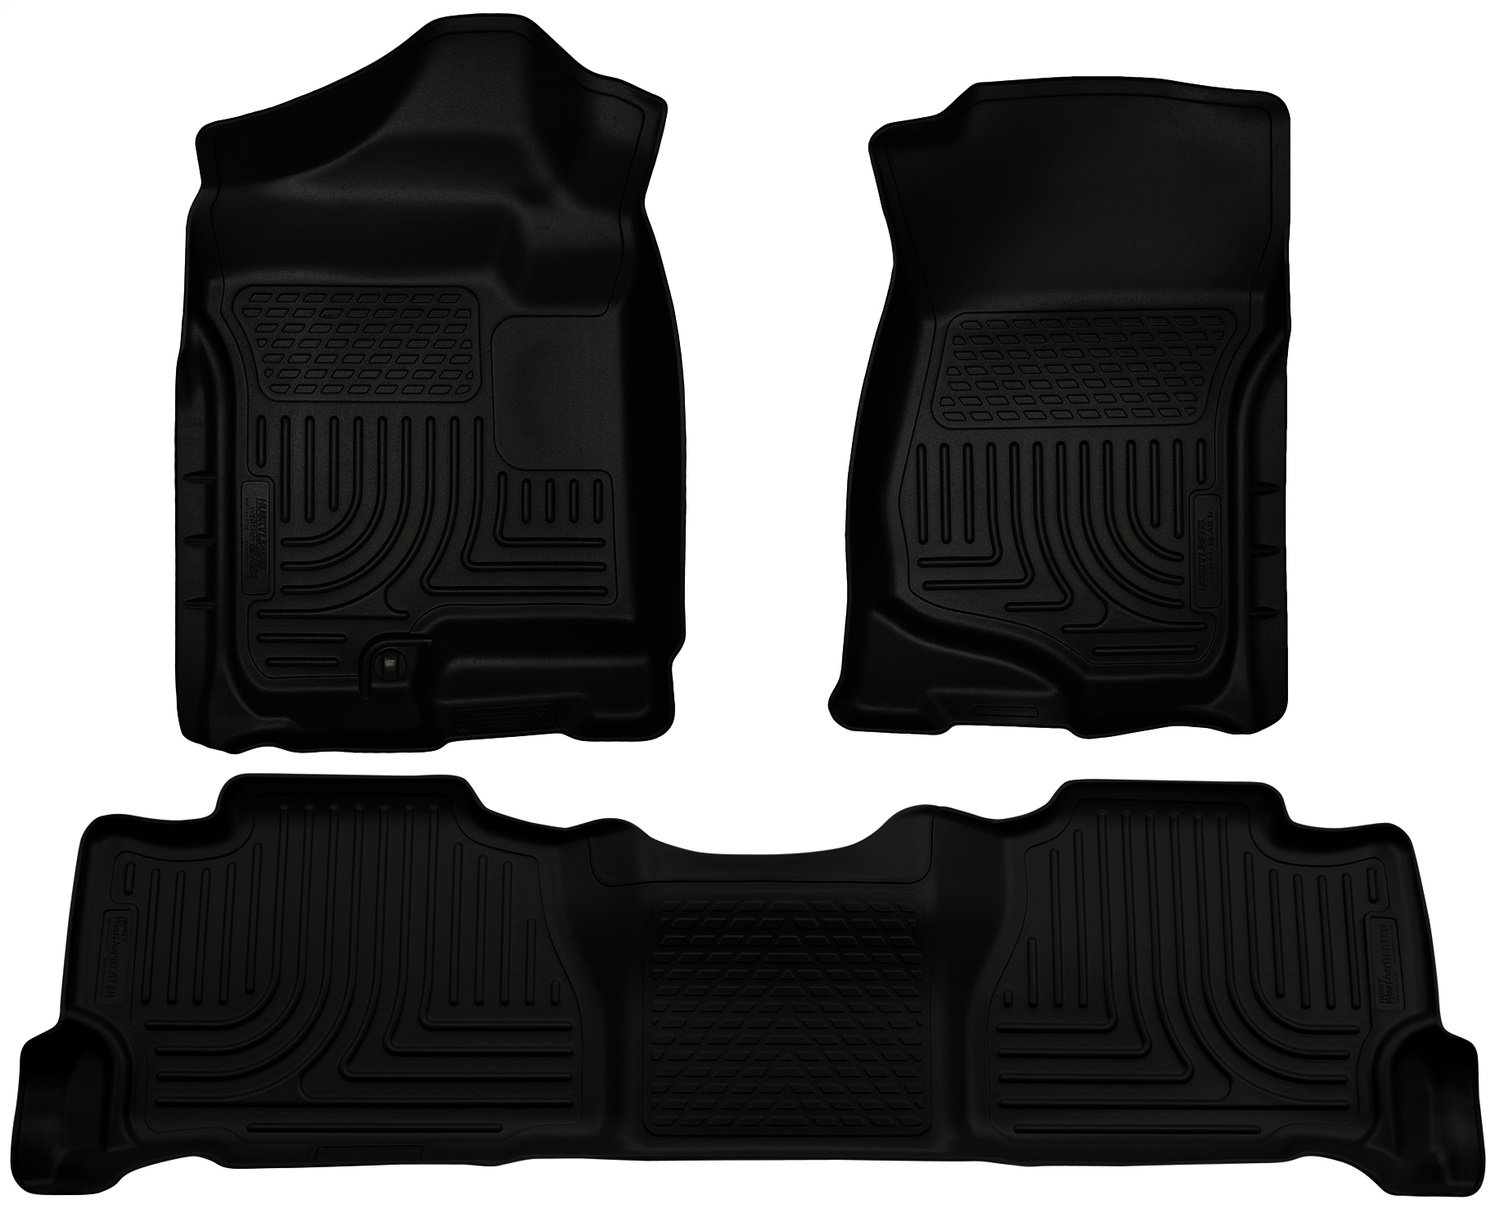 Husky Liners Front & 2nd Seat Floor Liners Fits 07-14 Escalade/Tahoe/Yukon 98251